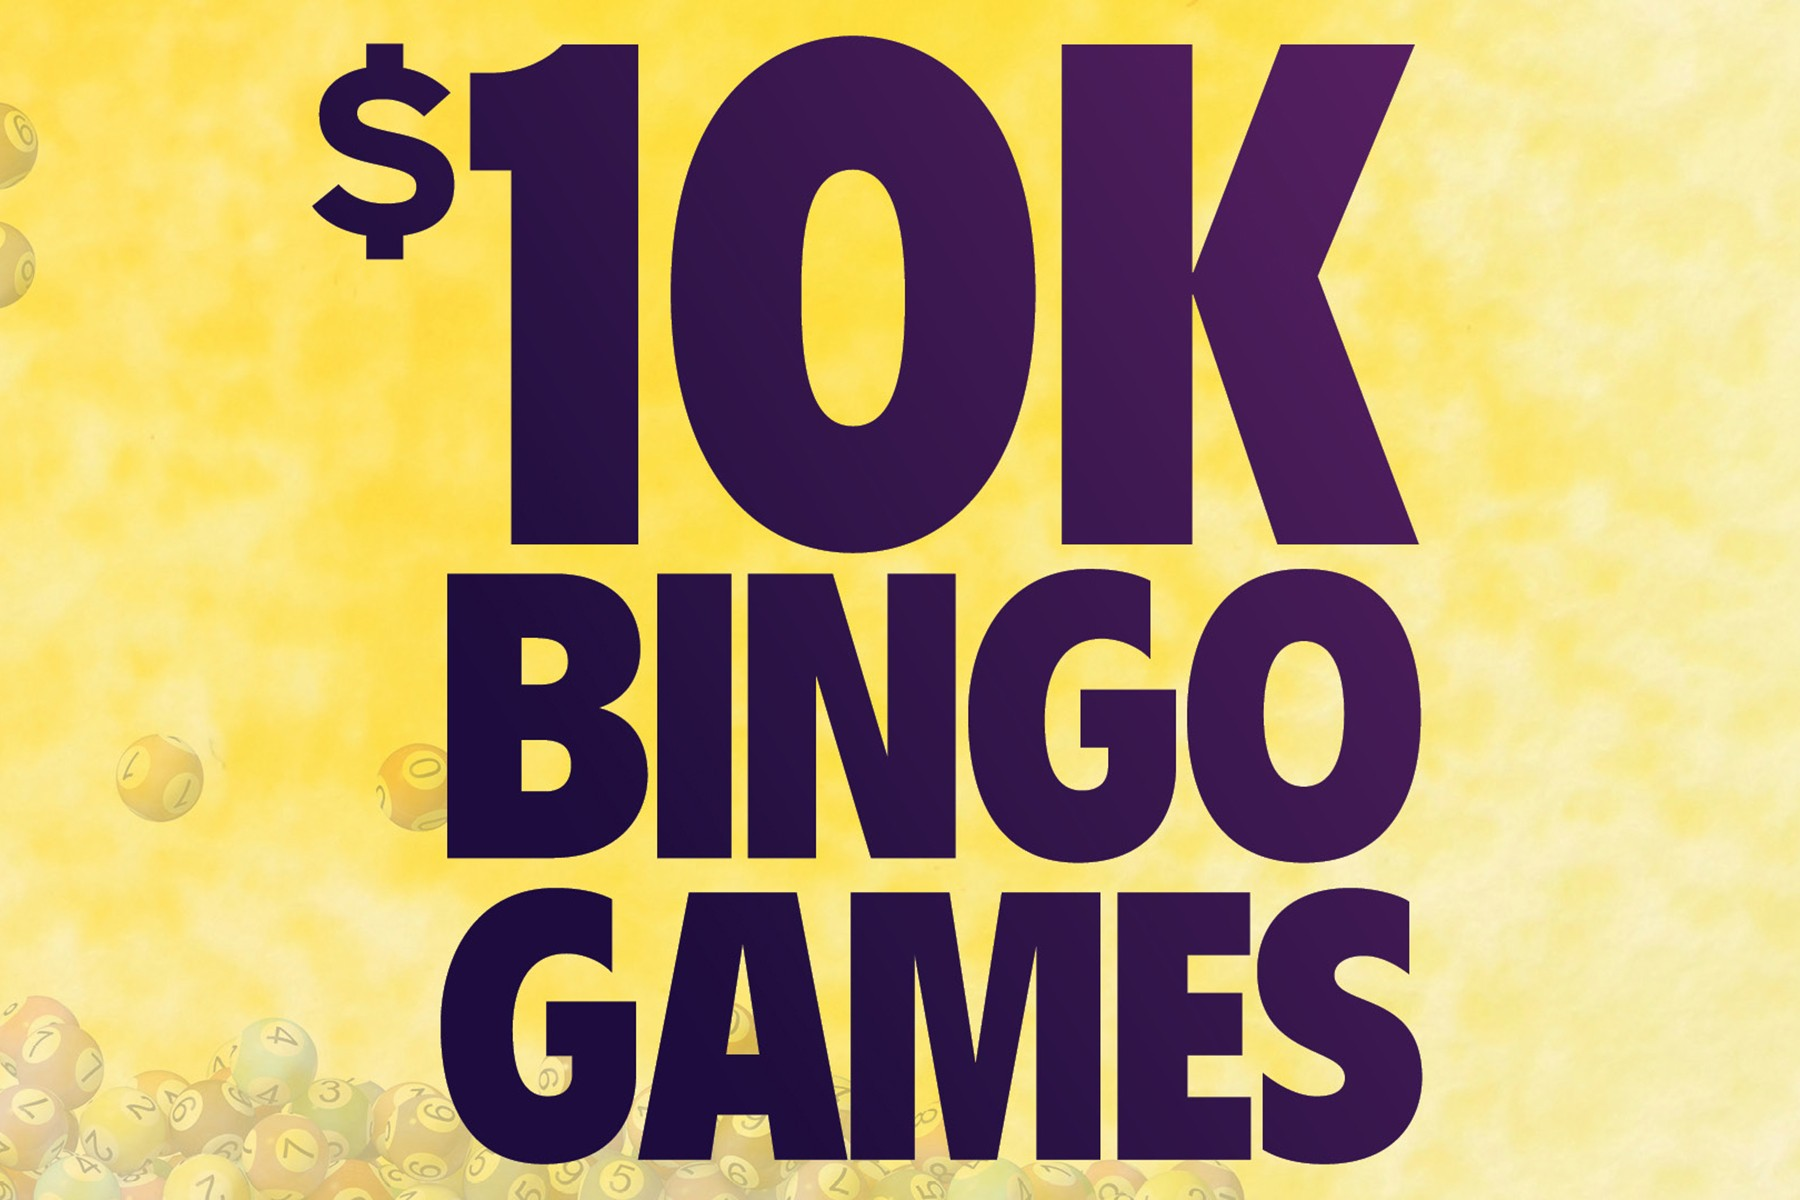 $10,000 Games